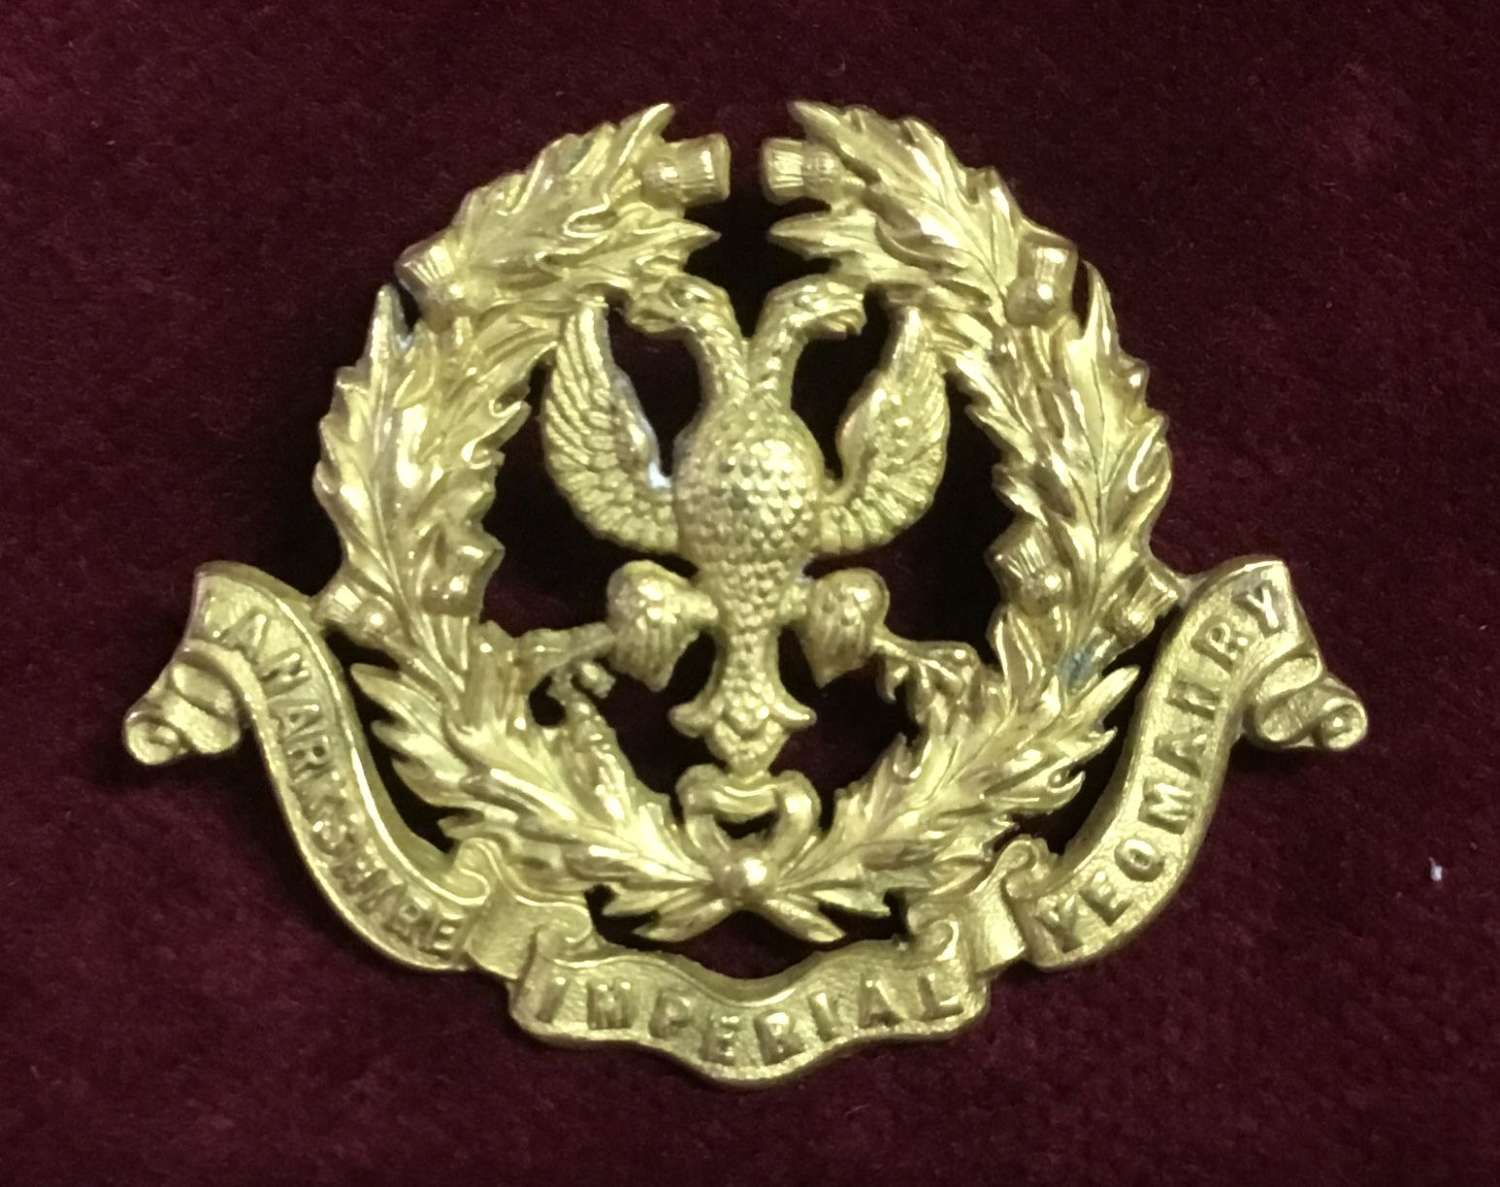 Lanarkshire Imperial Yeomanry Cap Badge